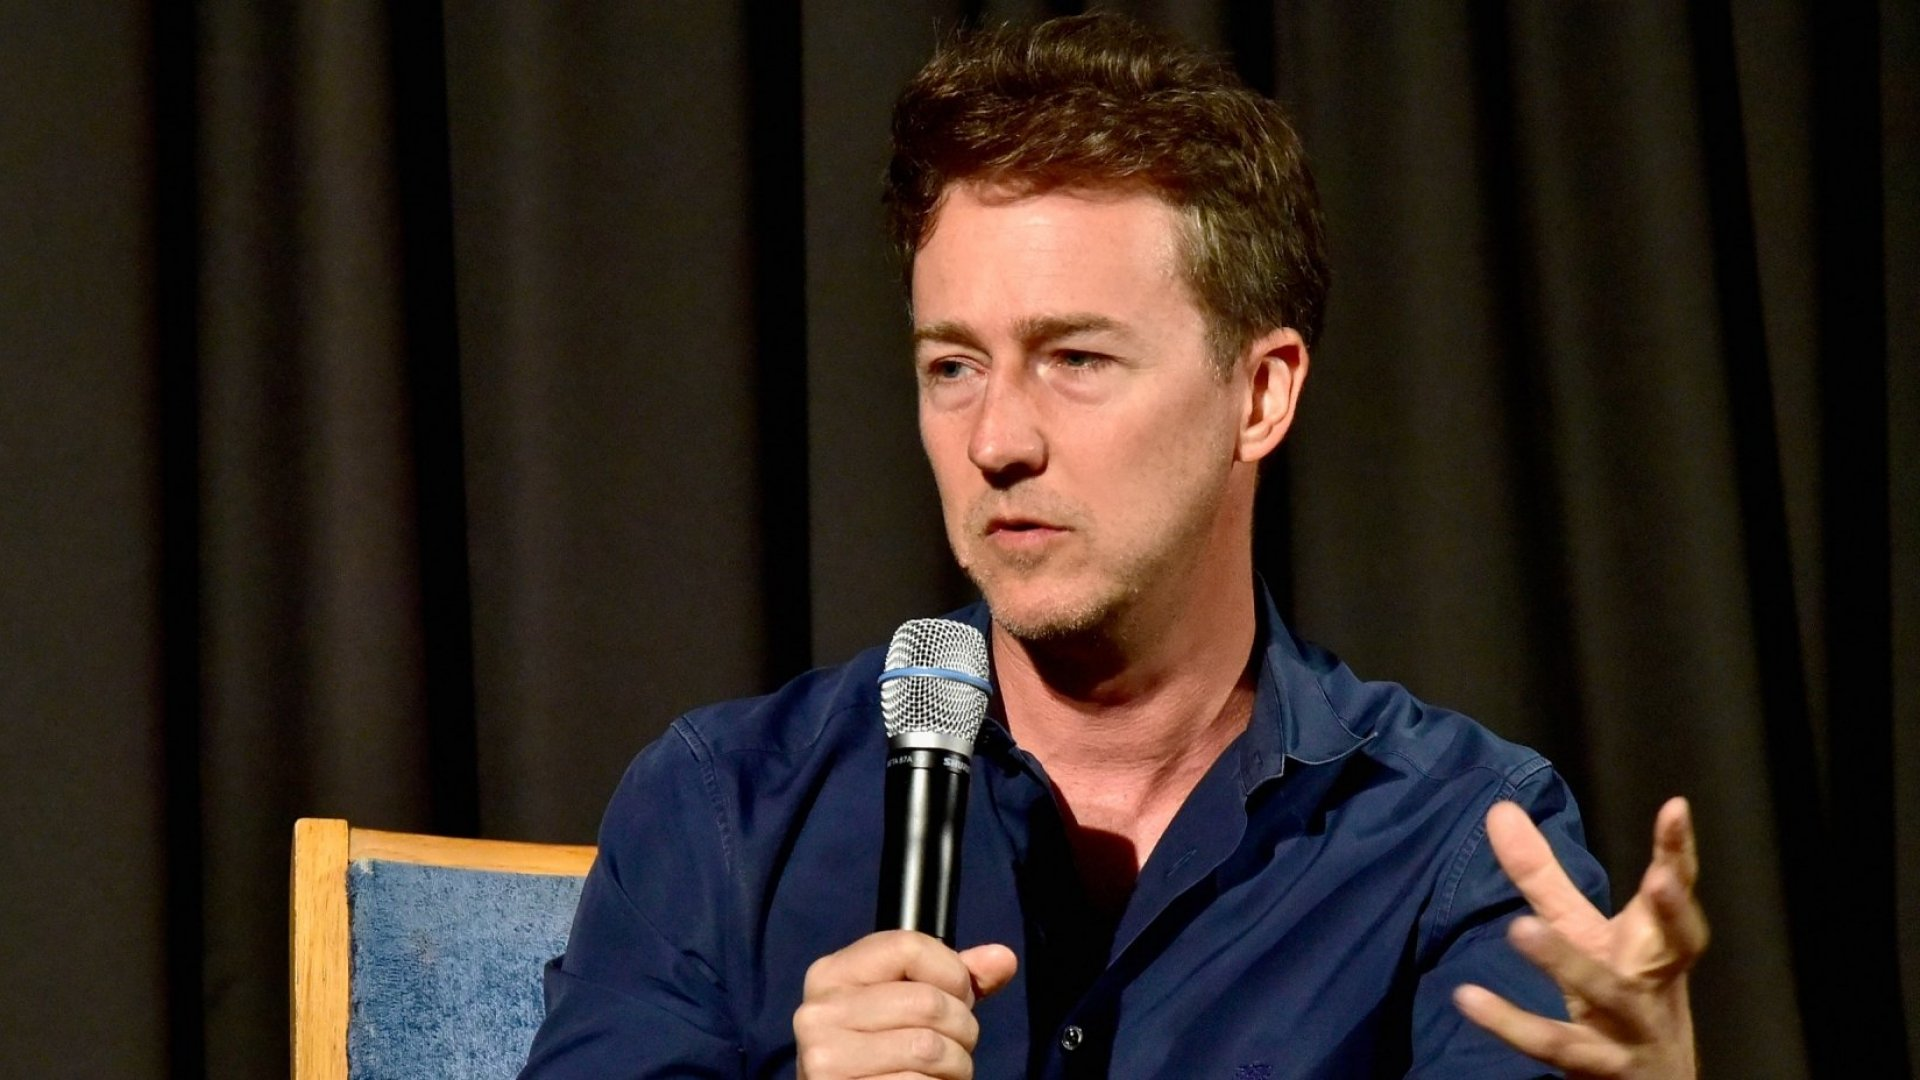 Actor Edward Norton Talks Running aCrowdfunding Business and Being Raised by Entrepreneurs